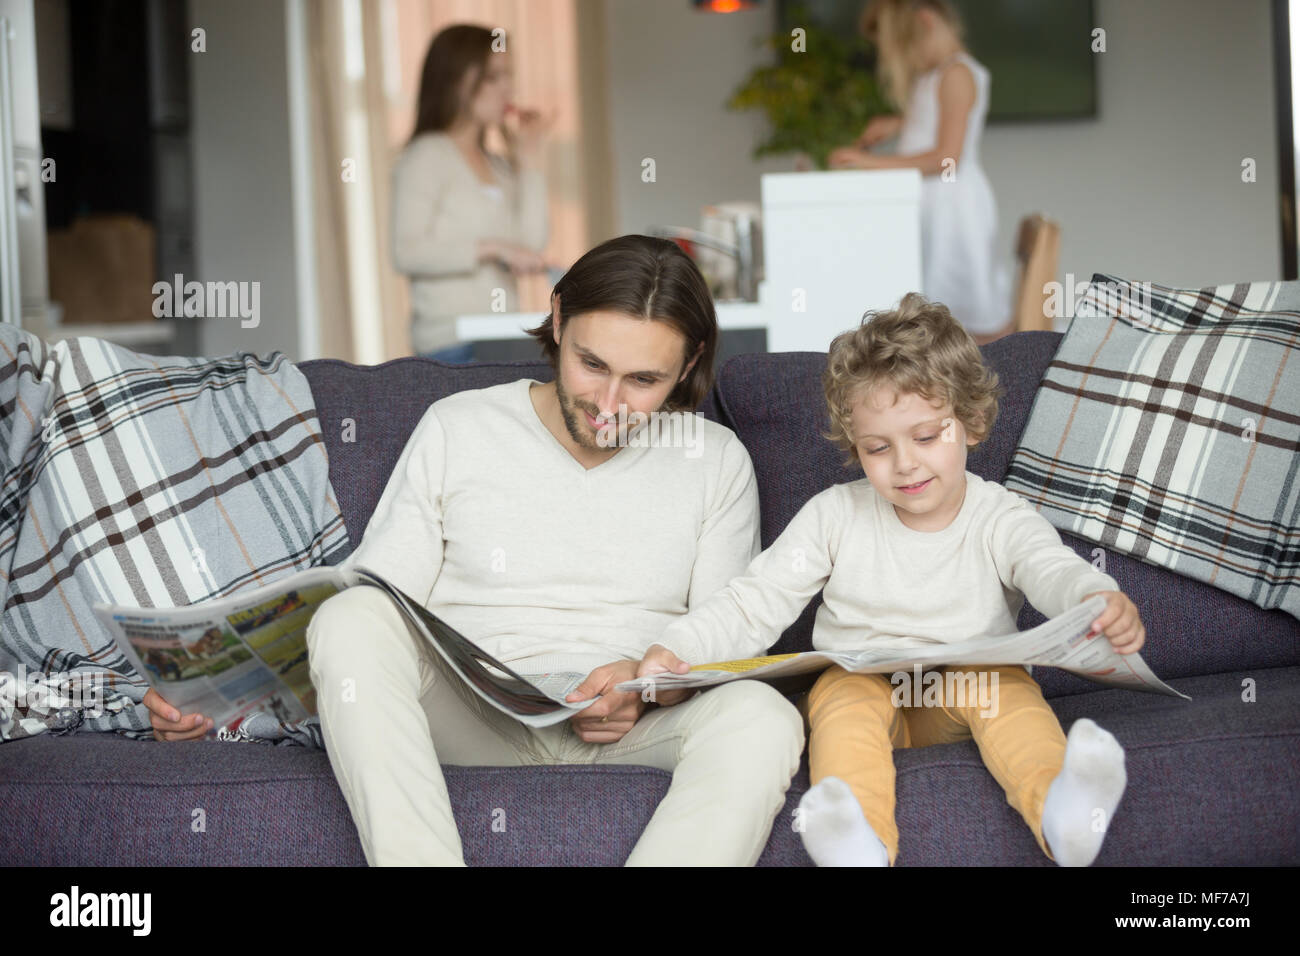 Little son pretending reading newspaper sitting on couch with fa - Stock Image